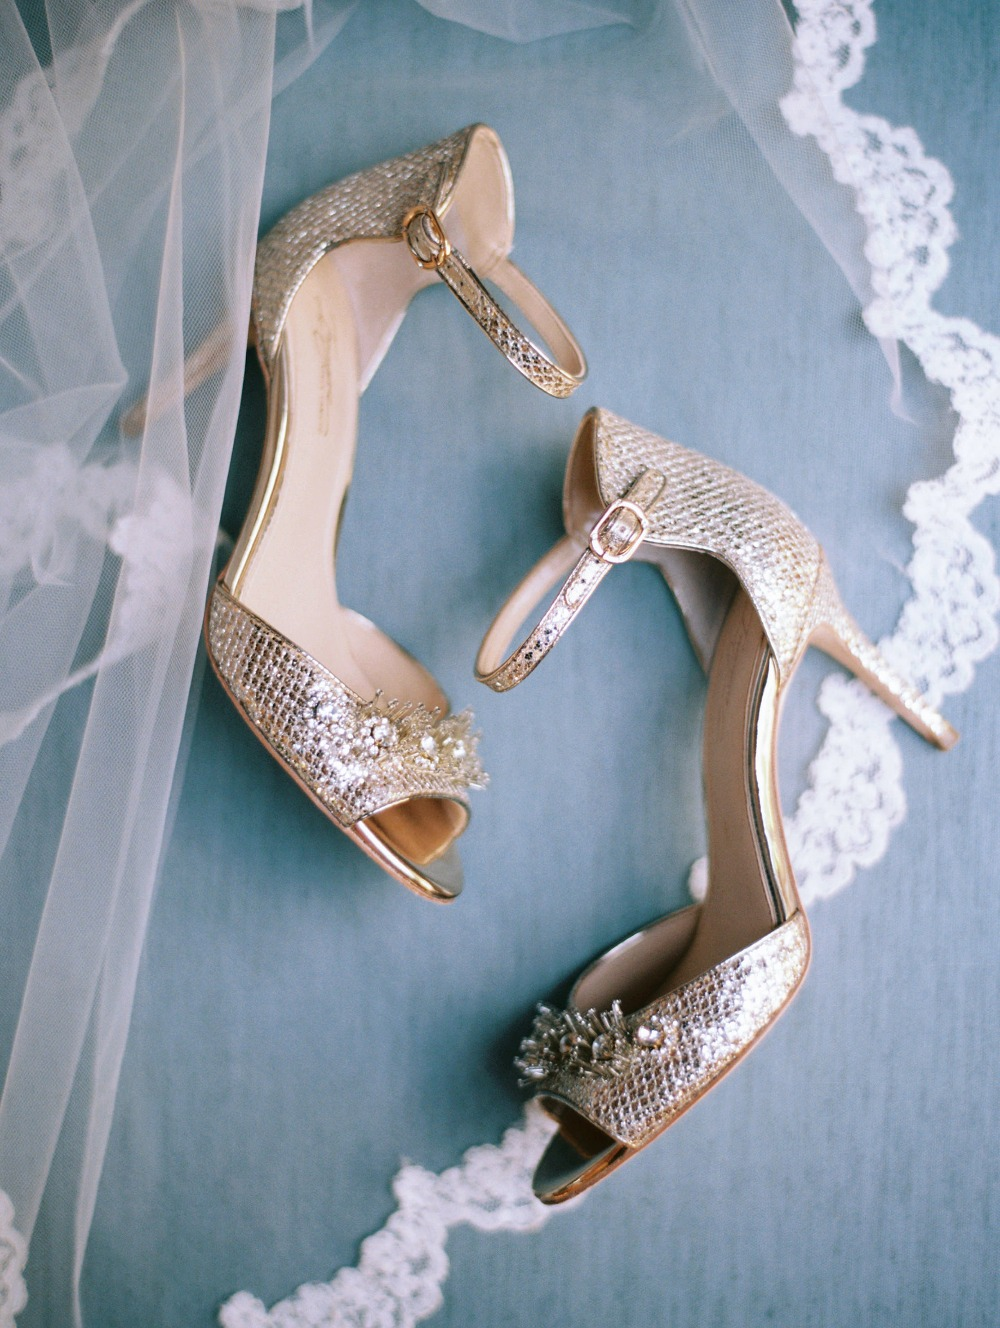 Shiny wedding heels